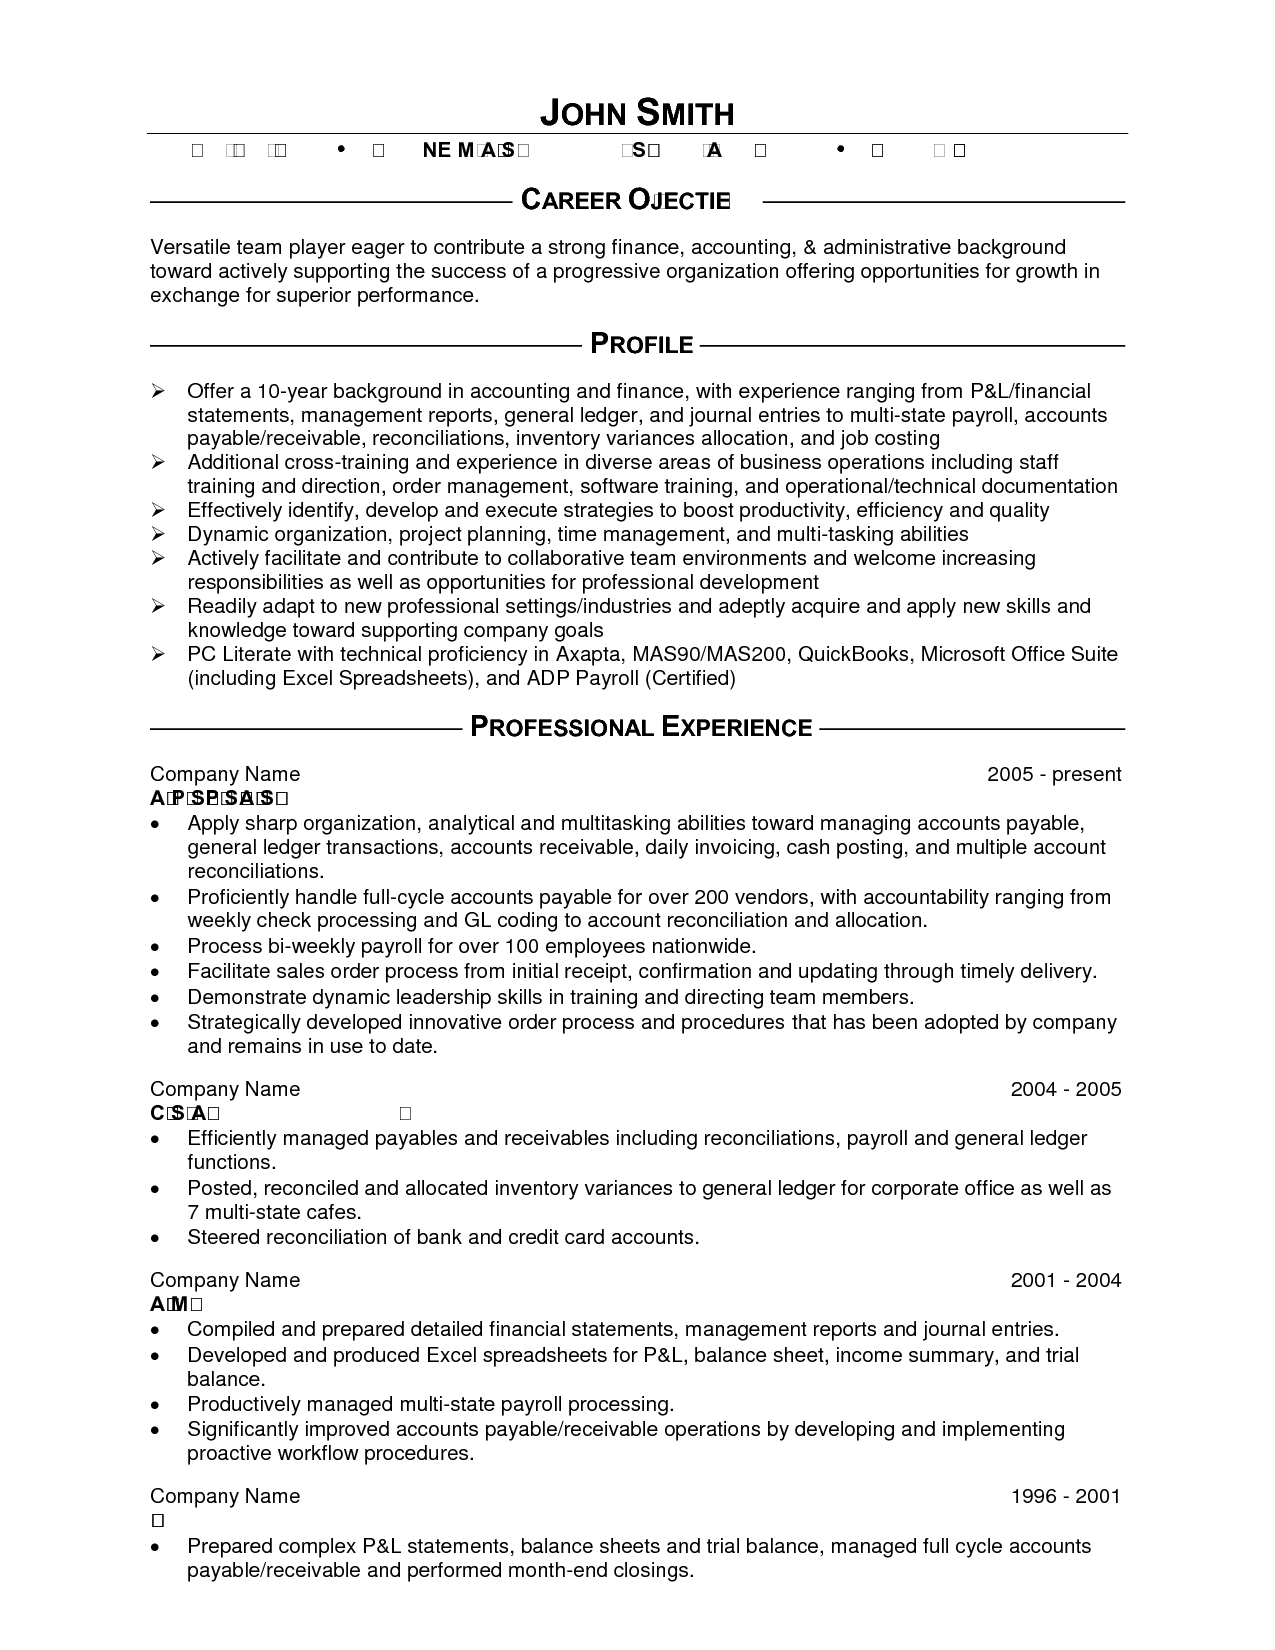 explore job resume examples resume tips and more - Sample Resume Summary For Finance